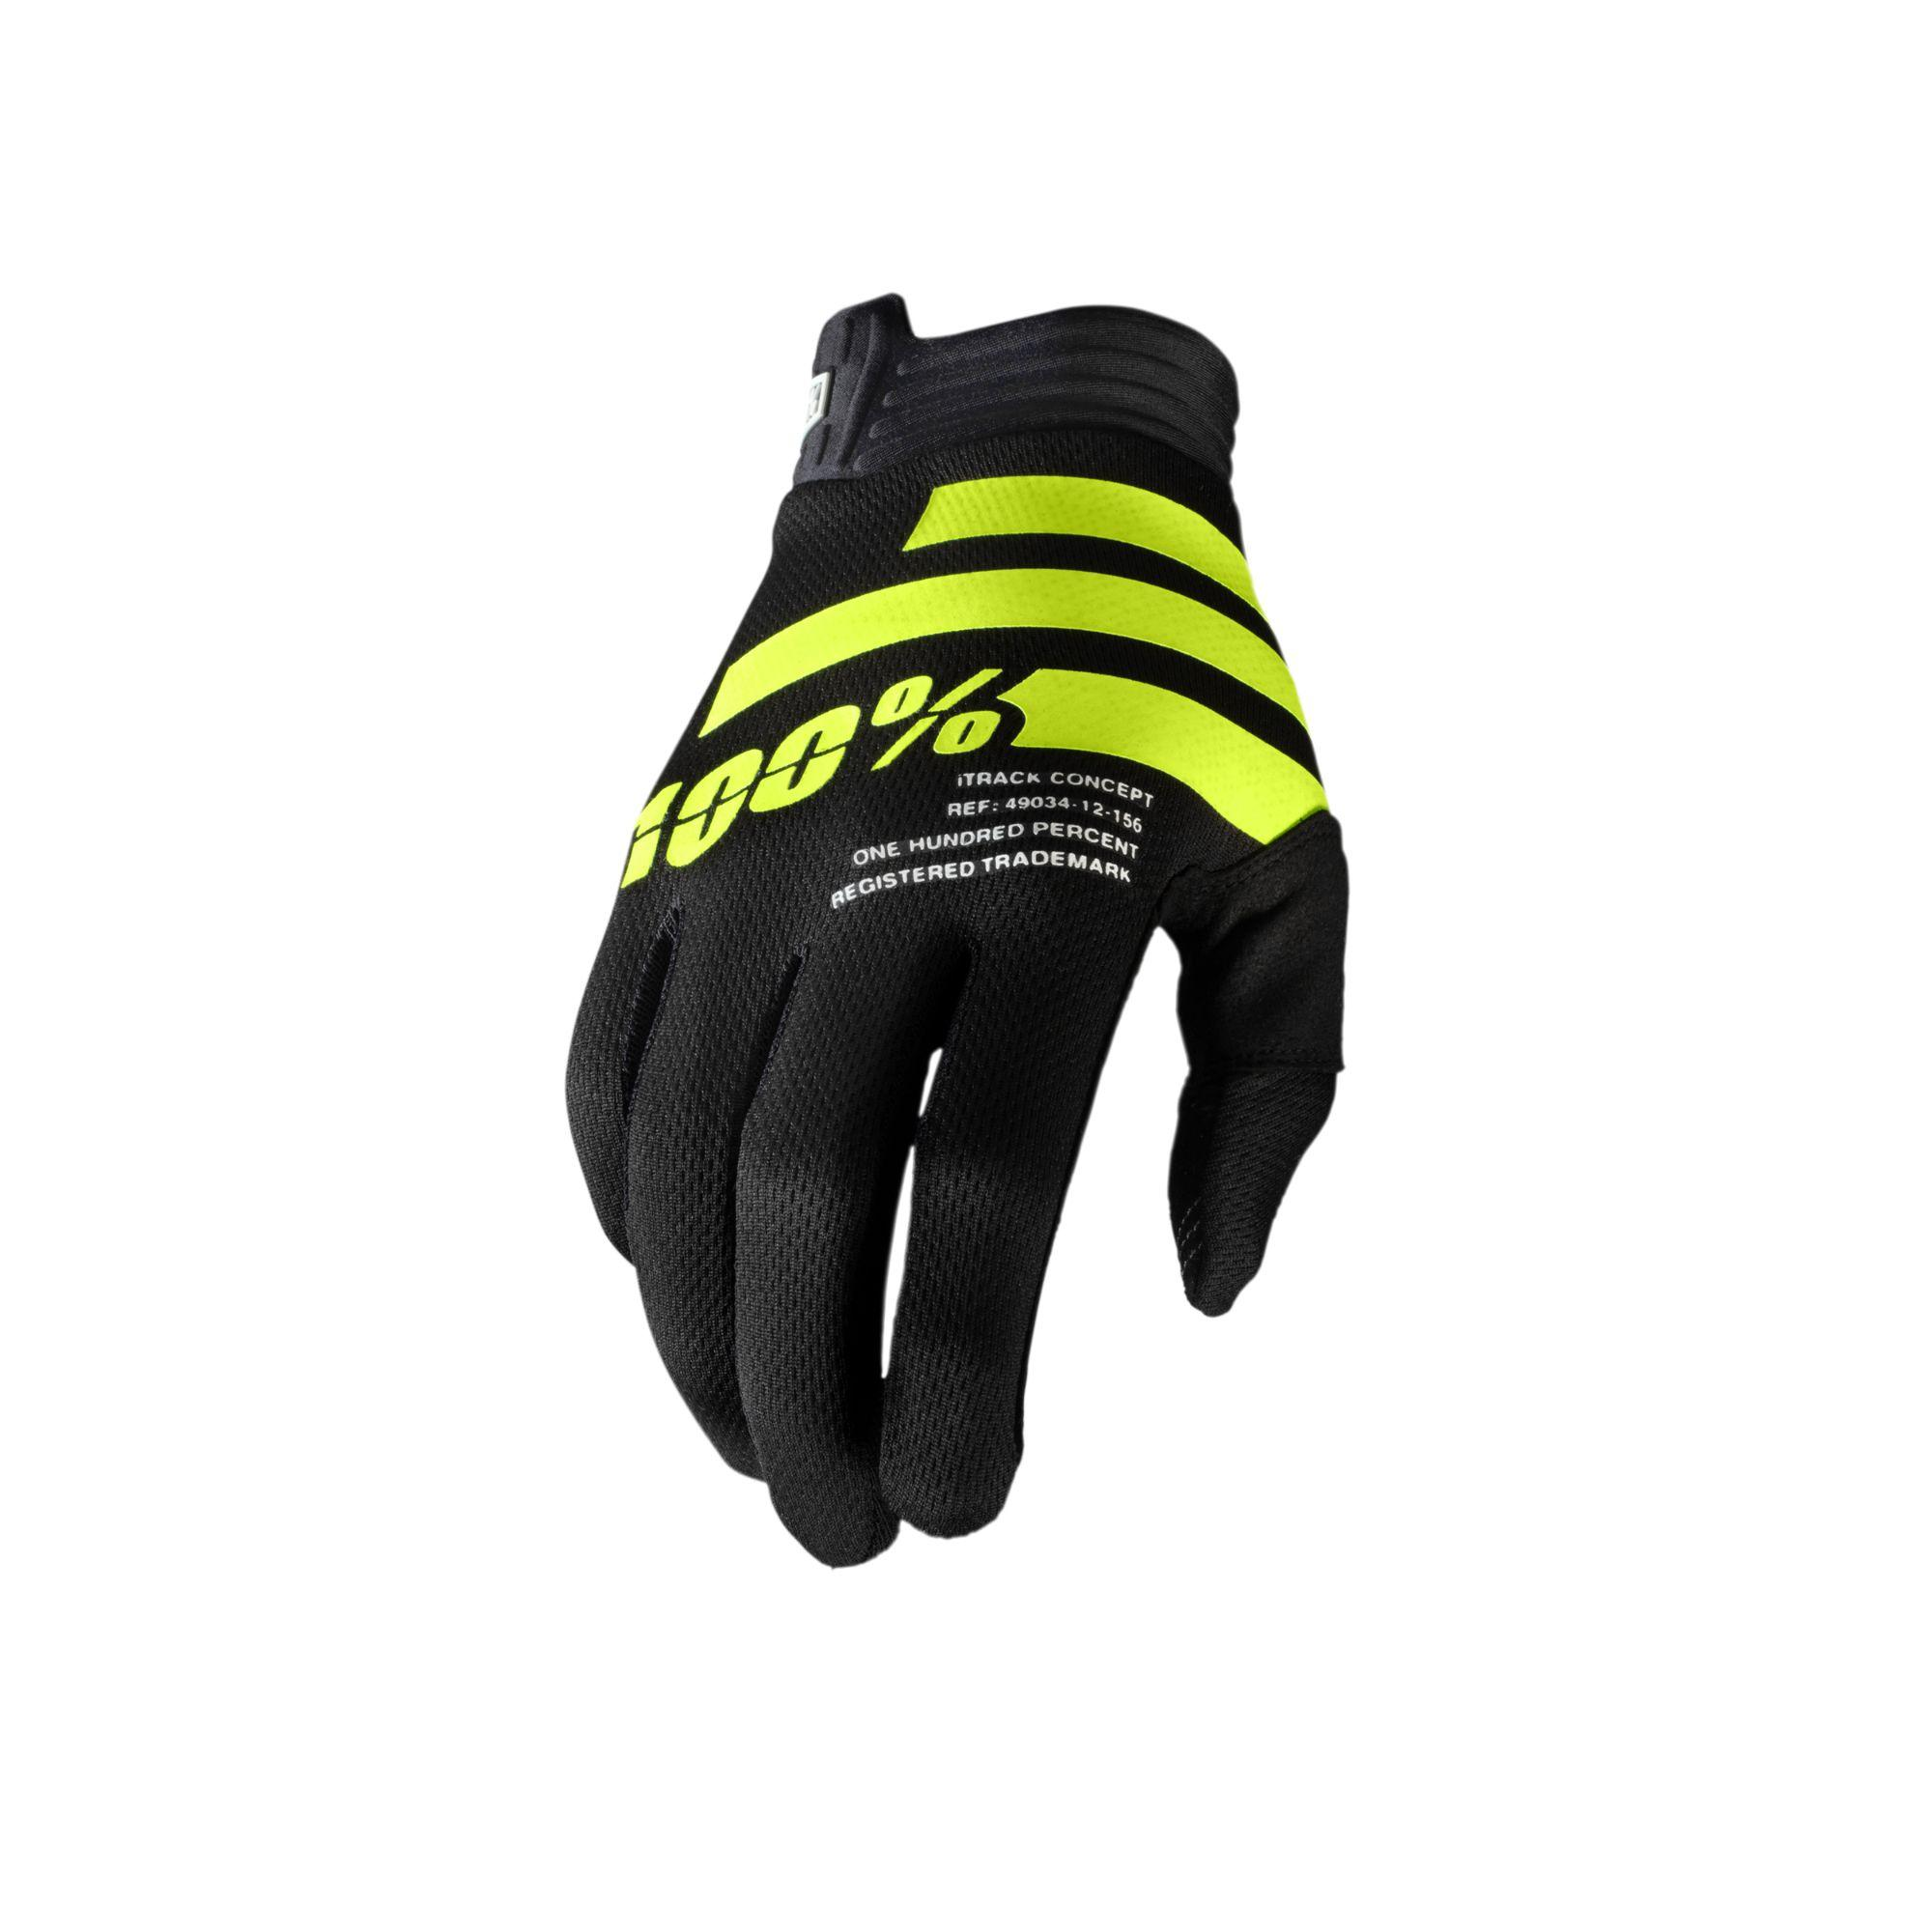 iTRACK Glove Black/Fluo Yellow